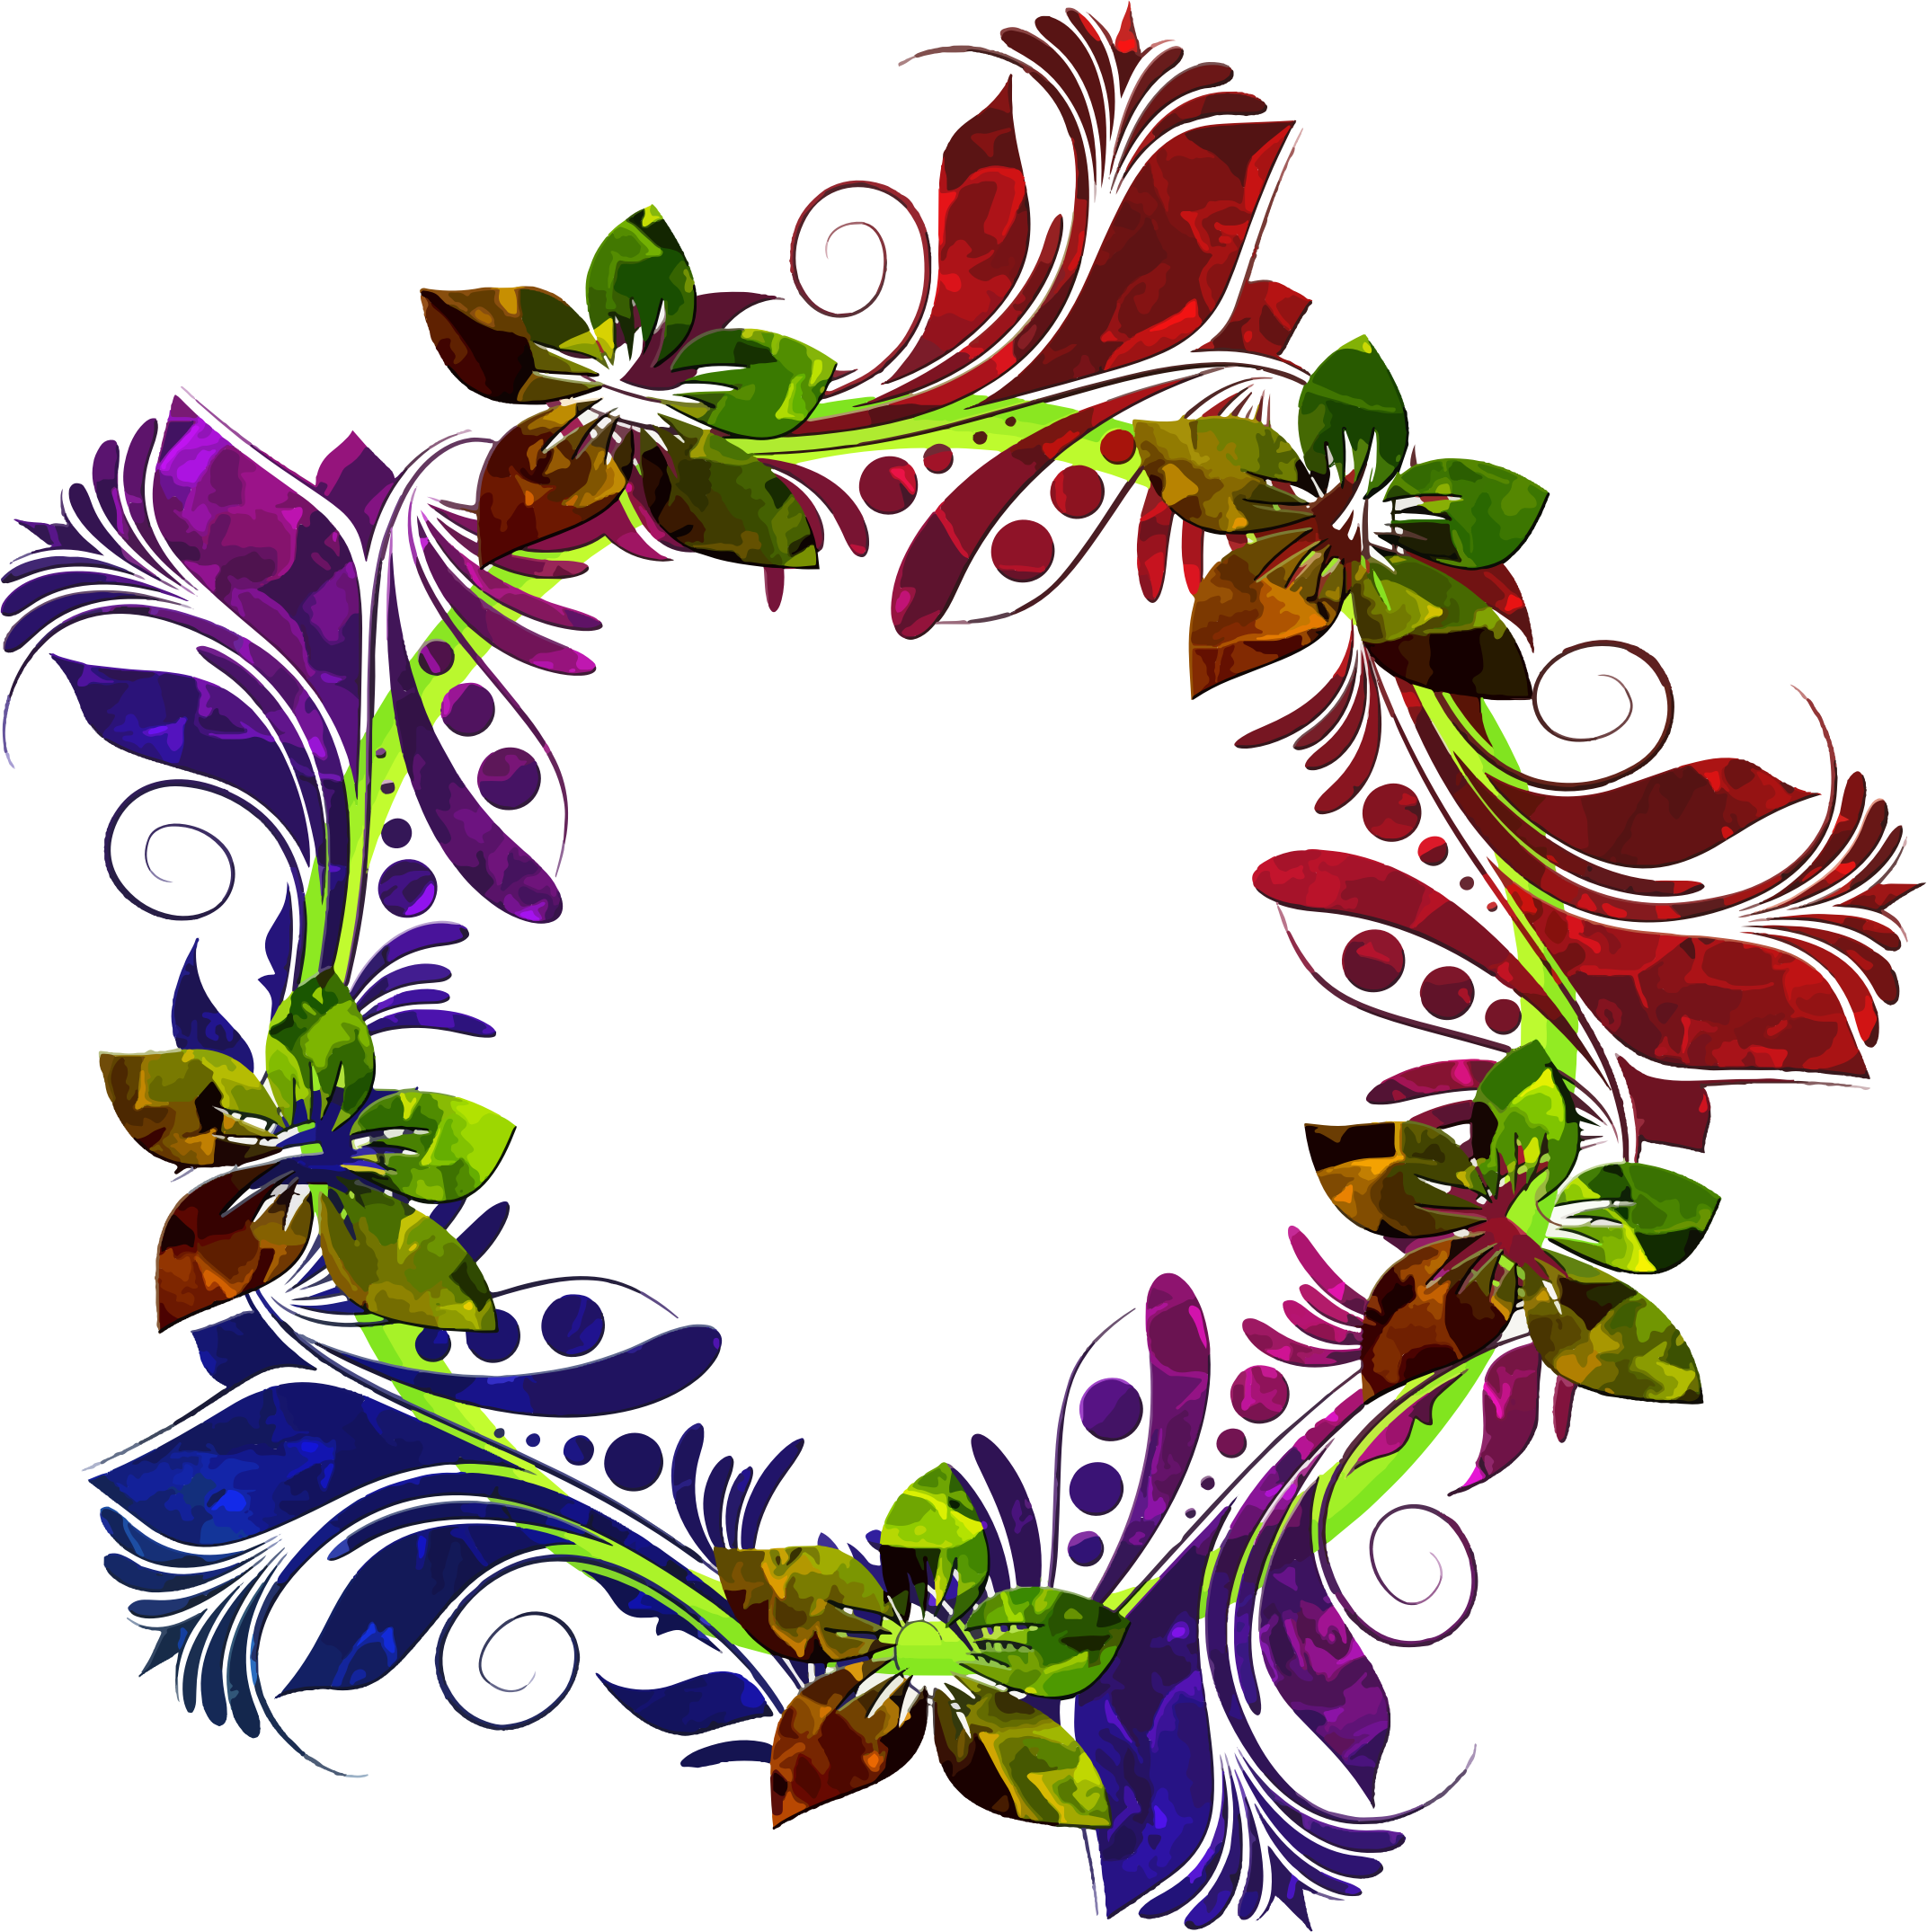 Colorful floral big image. Flower wreath clipart png